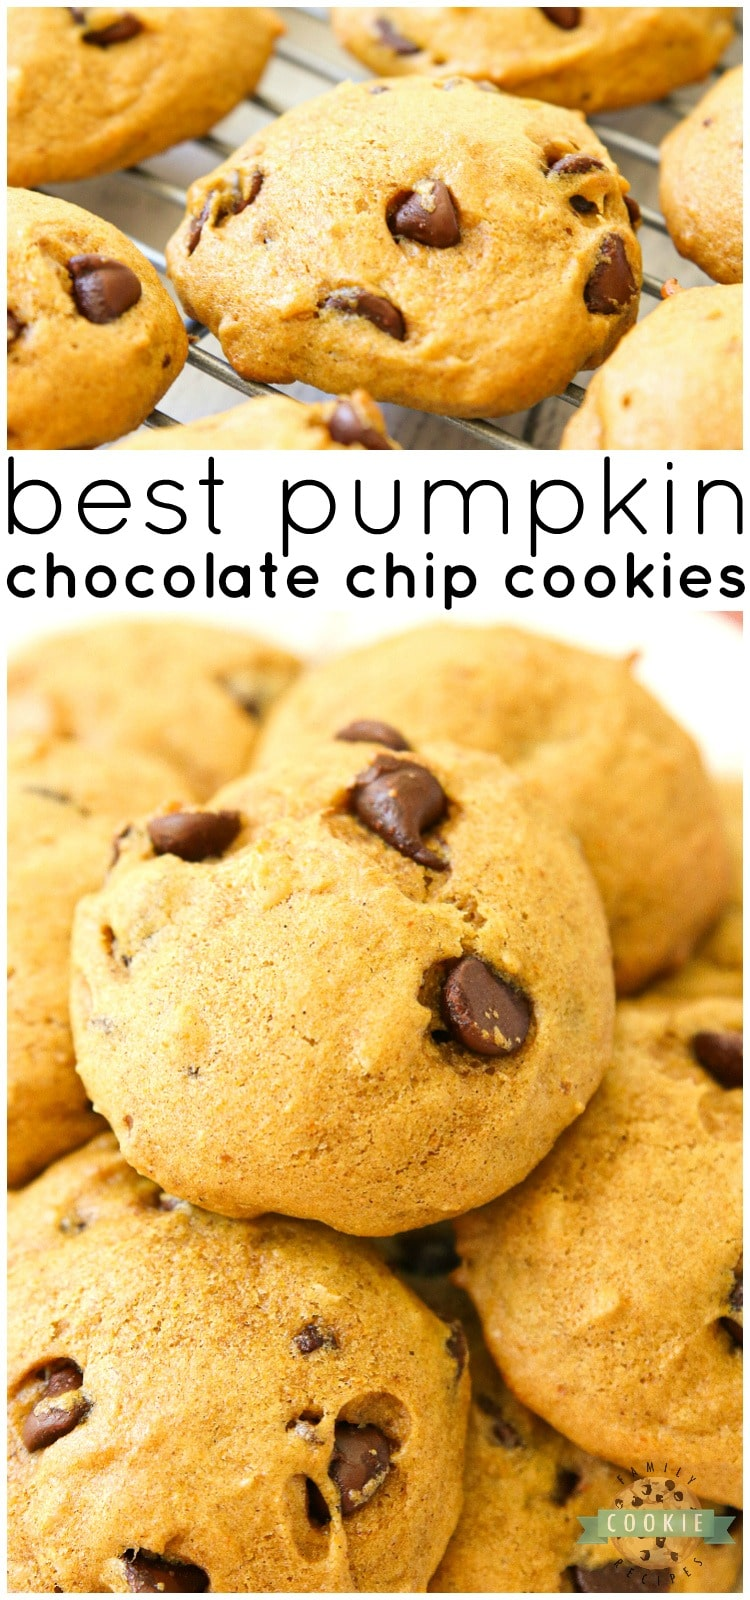 Delicious Pumpkin Chocolate Chip Cookies are incredible pillows of soft and chewy cookie goodness! Pillowy soft chocolate chip cookies straight from the oven are made even better with the addition of pumpkin. via @buttergirls